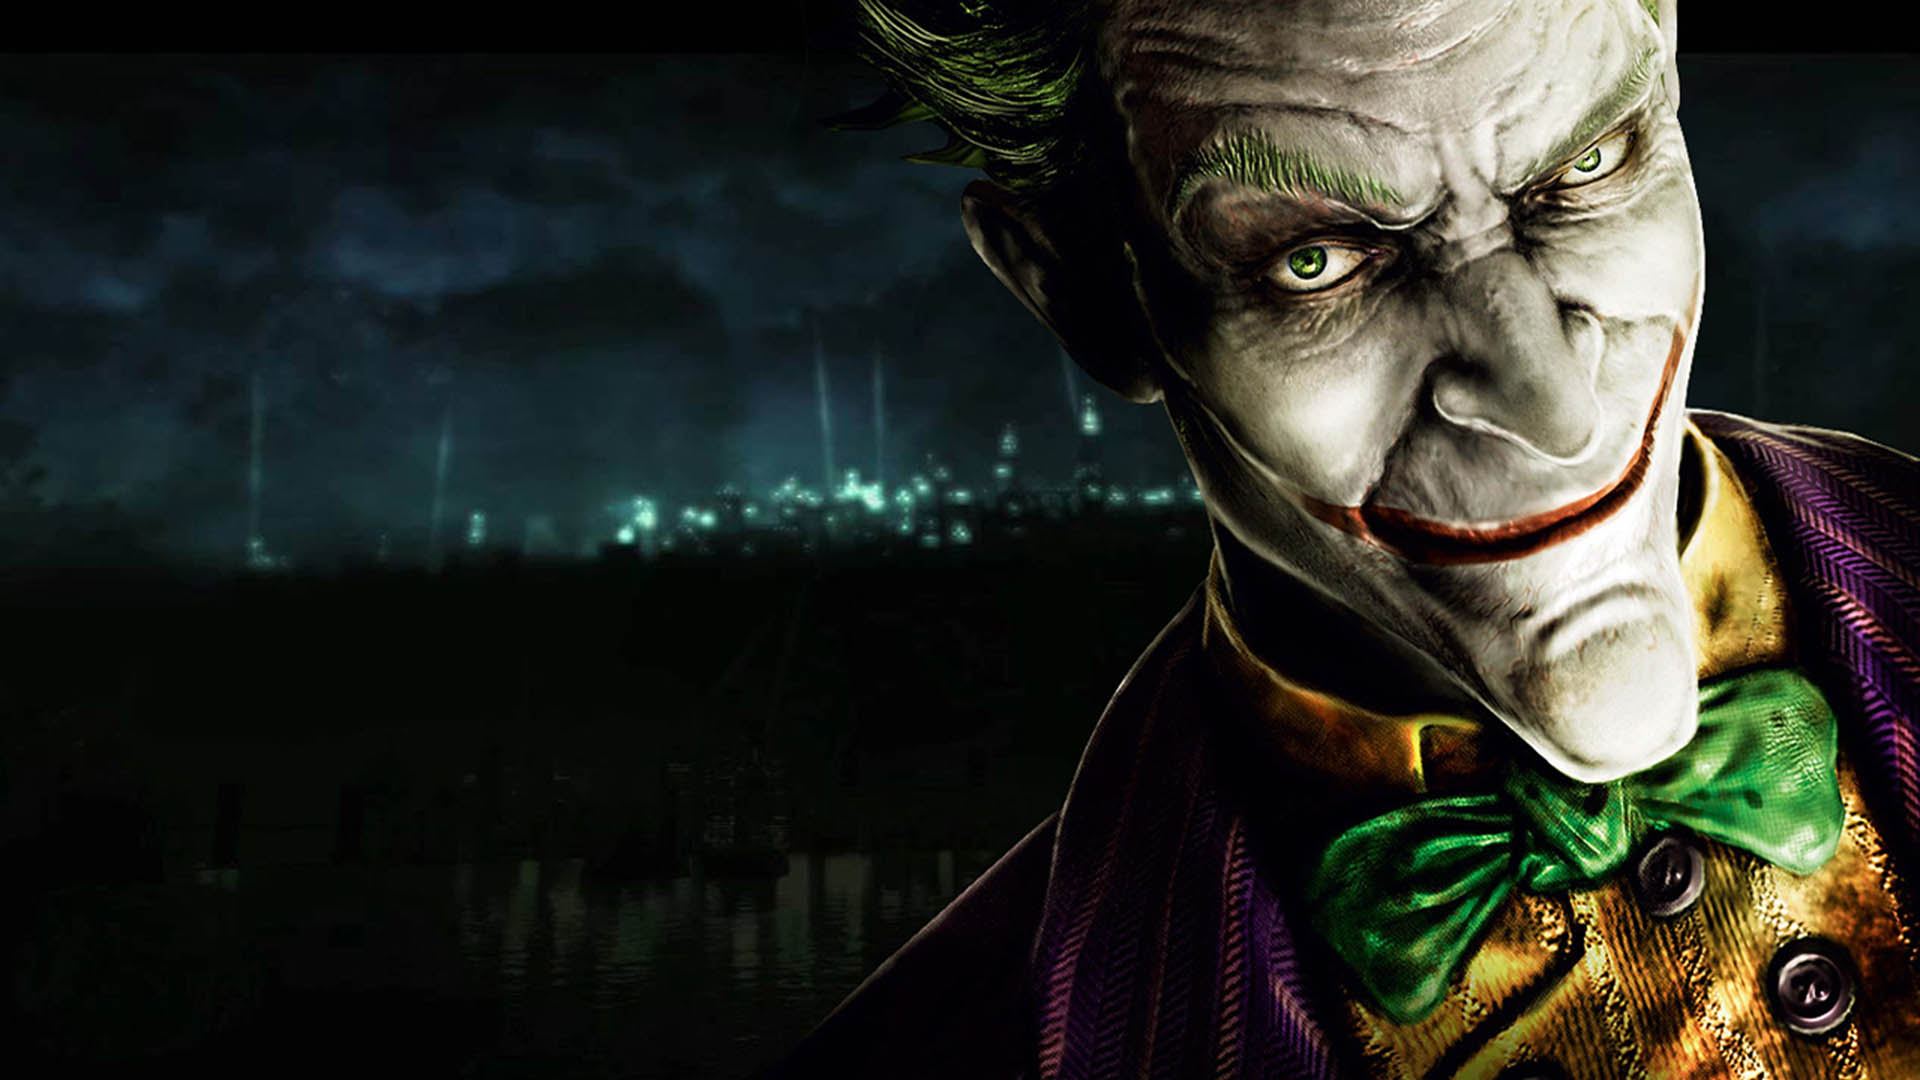 joker Wallpapers HD fondos de pantalla hd Wallpaper Hd   Fondos de 1920x1080